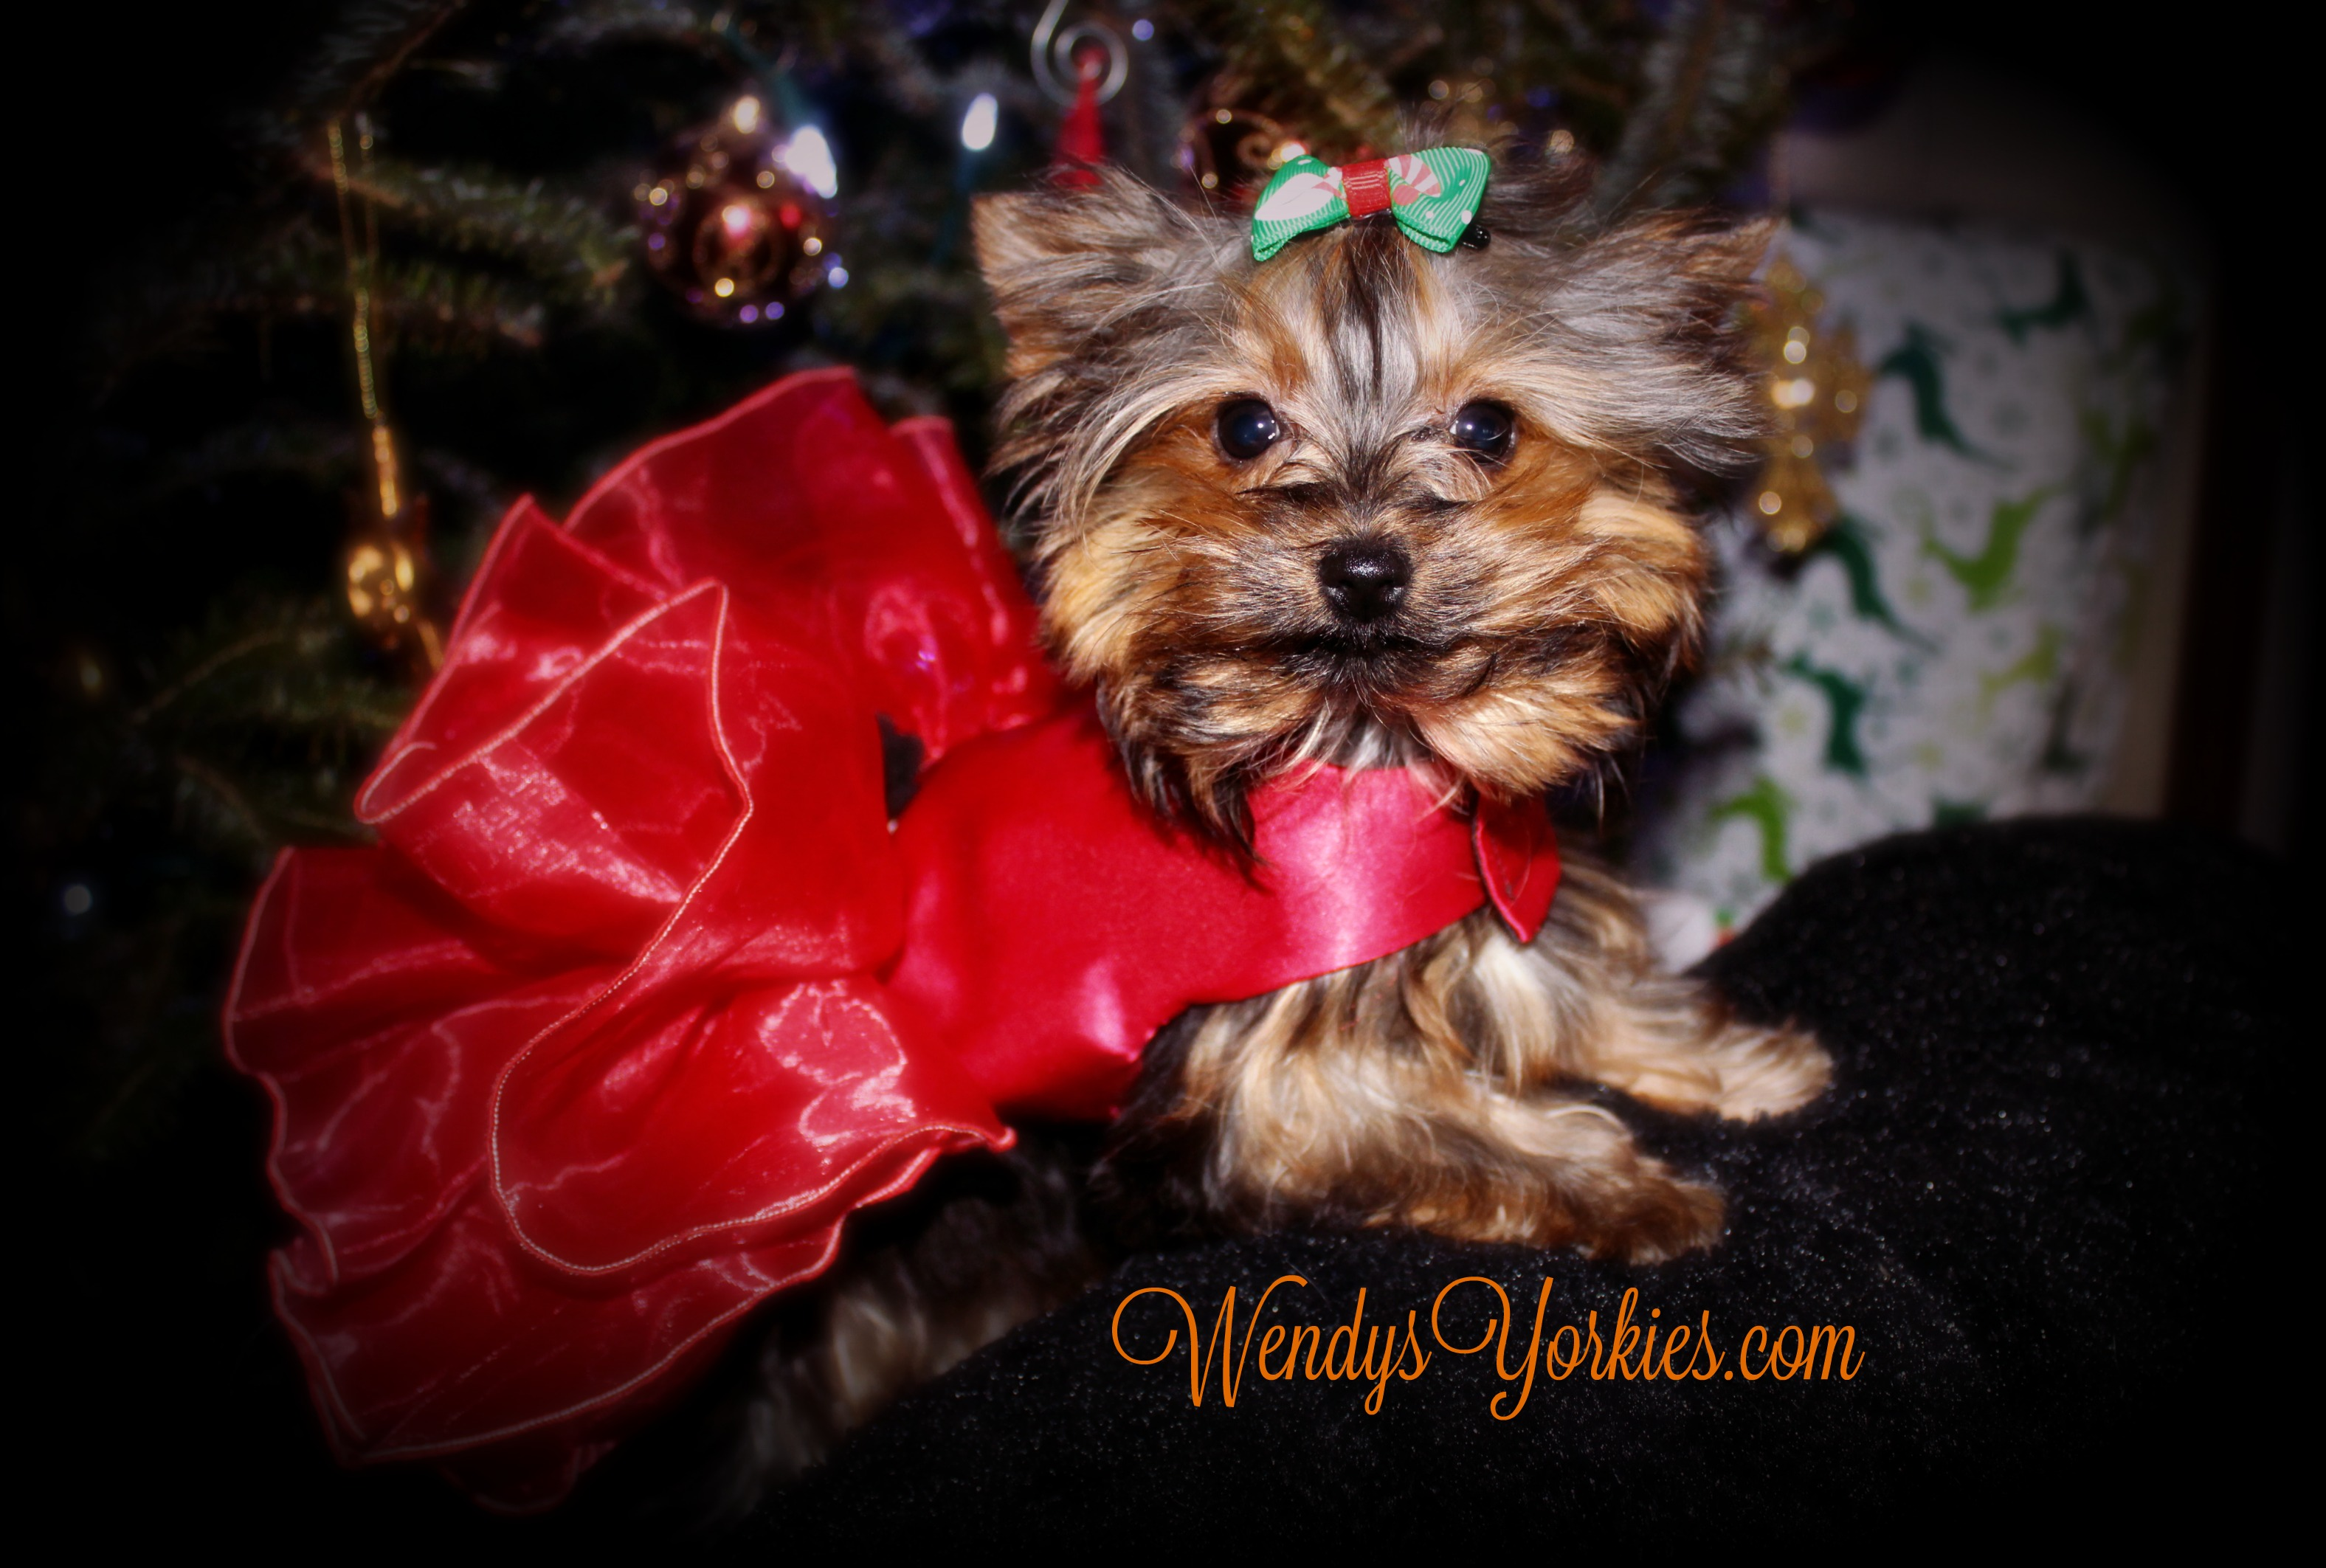 Tiny Yorkie puppy for sale, Teacup Micro Yorkie puppies for sale, WEndysYorkies, Stormy